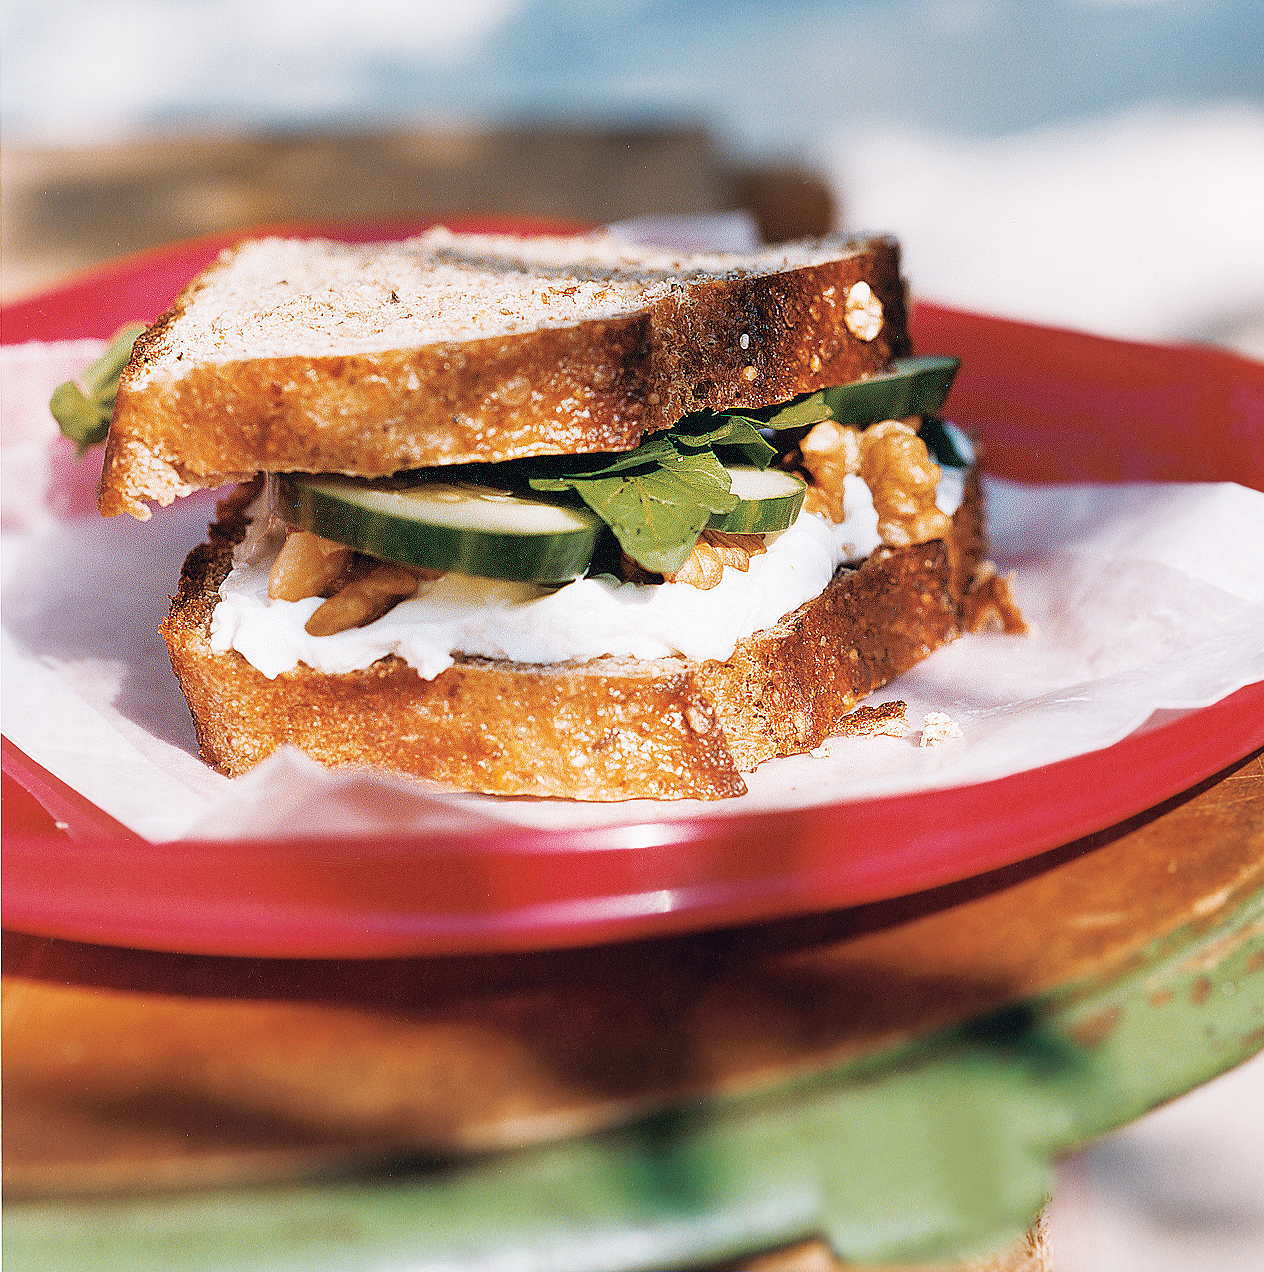 Cucmber and Goat Cheese Sandwiches